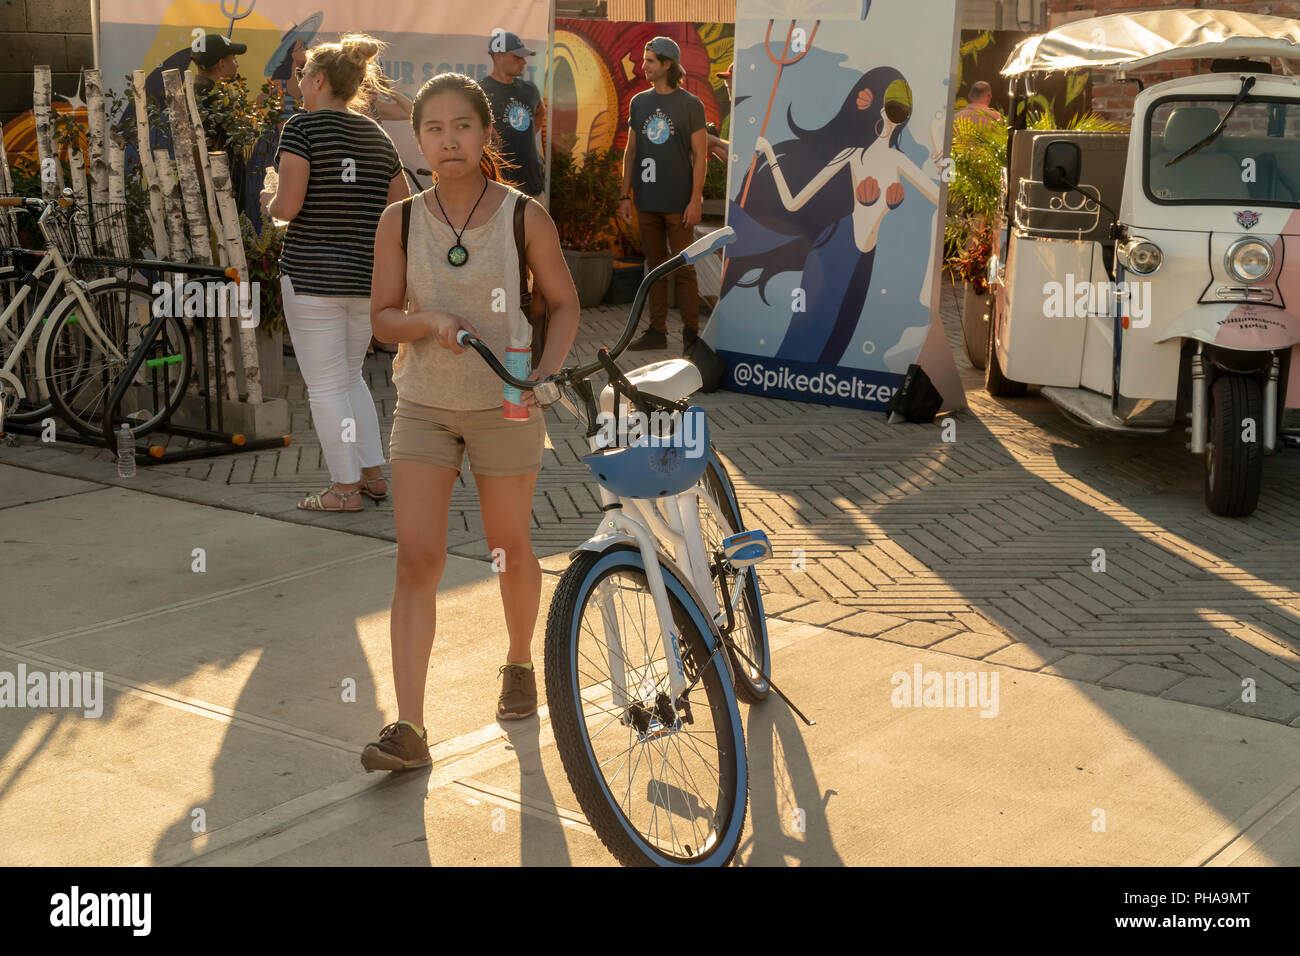 Brooklyn millennials in the Williamsburg neighborhood in Brooklyn receive their free bicycles courtesy of the alcoholic beverage brand, SpikedSeltzer, on Tuesday, August 28, 2018. The Metropolitan Transportation Authority will be shutting down the 'L' train for 15 months, the lifeline in and out of Williamsburg, in April 2019 for Hurricane Sandy related repairs. The giveaway of bicycles is to help ease the transportation pain of the neighborhood's residents, as well as a brand promotion called 'Pour Some Out For The L'  geared toward millennials. SpikedSeltzer is a brand of Anheuser-Busch InBe - Stock Image